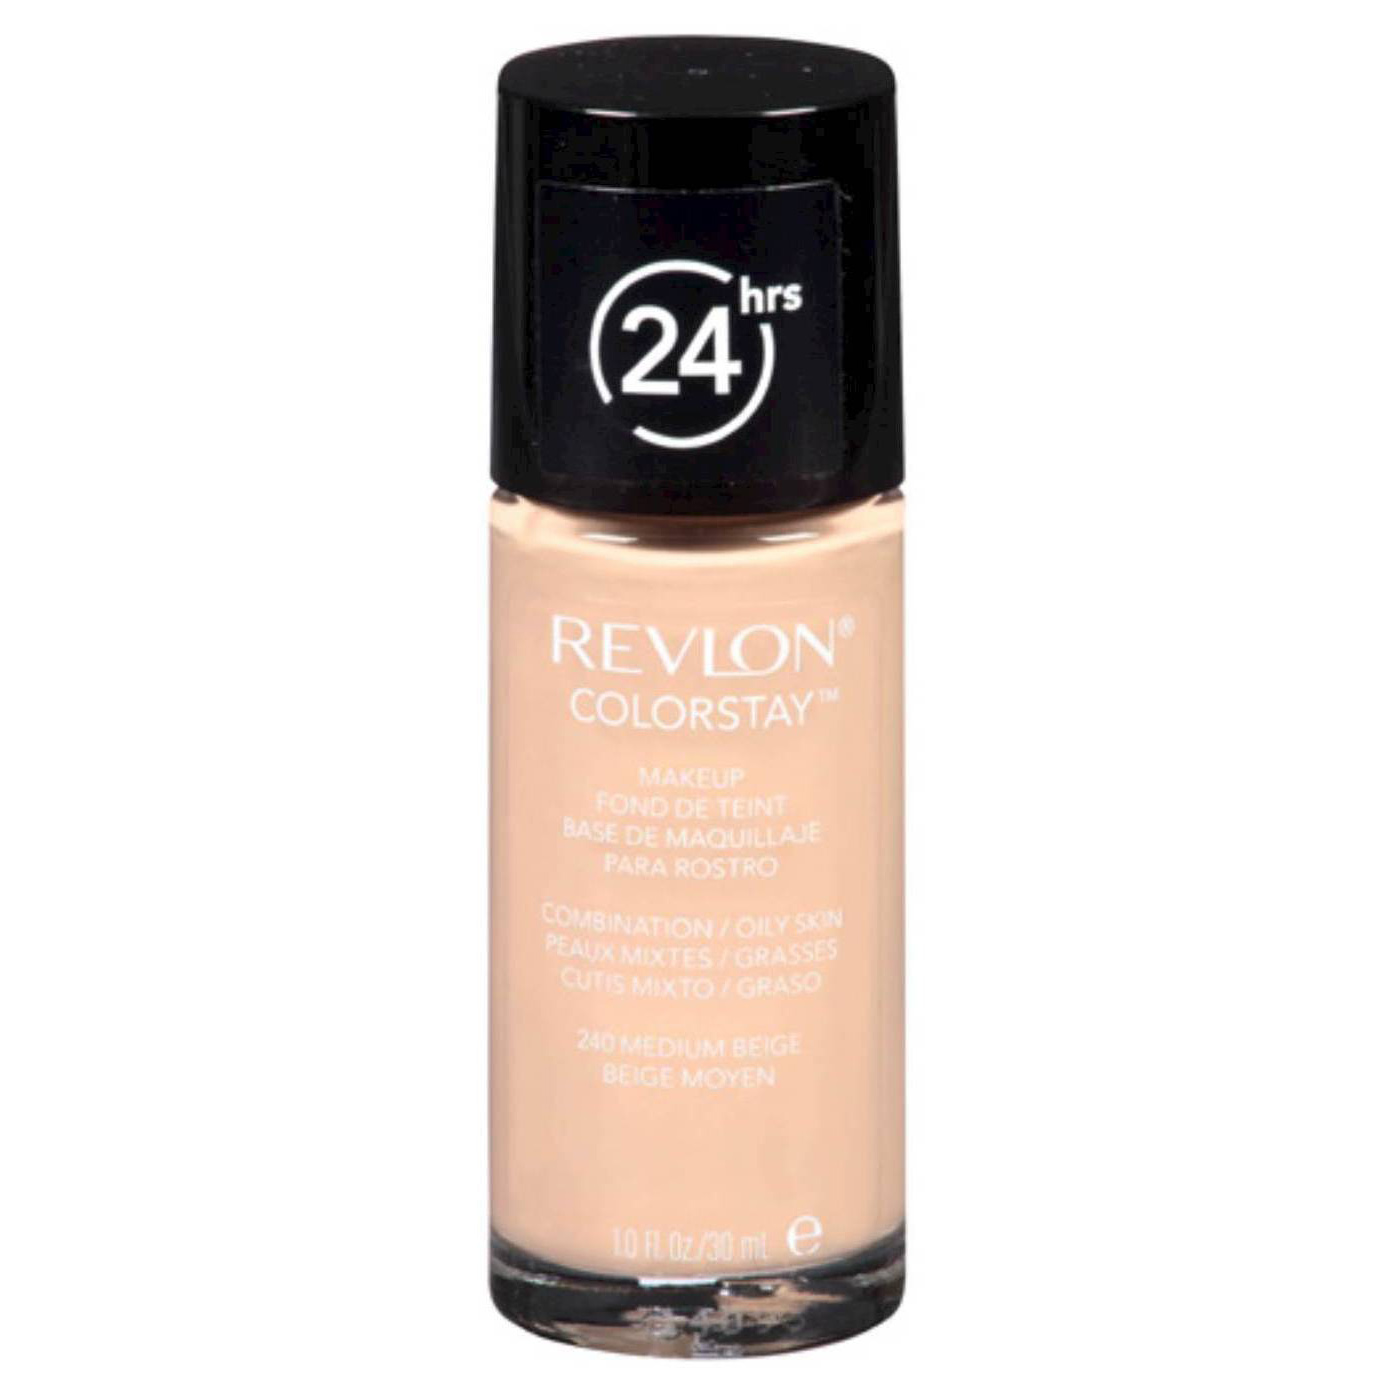 Revlon ColorStay Foundation for Combination and Oily Skin